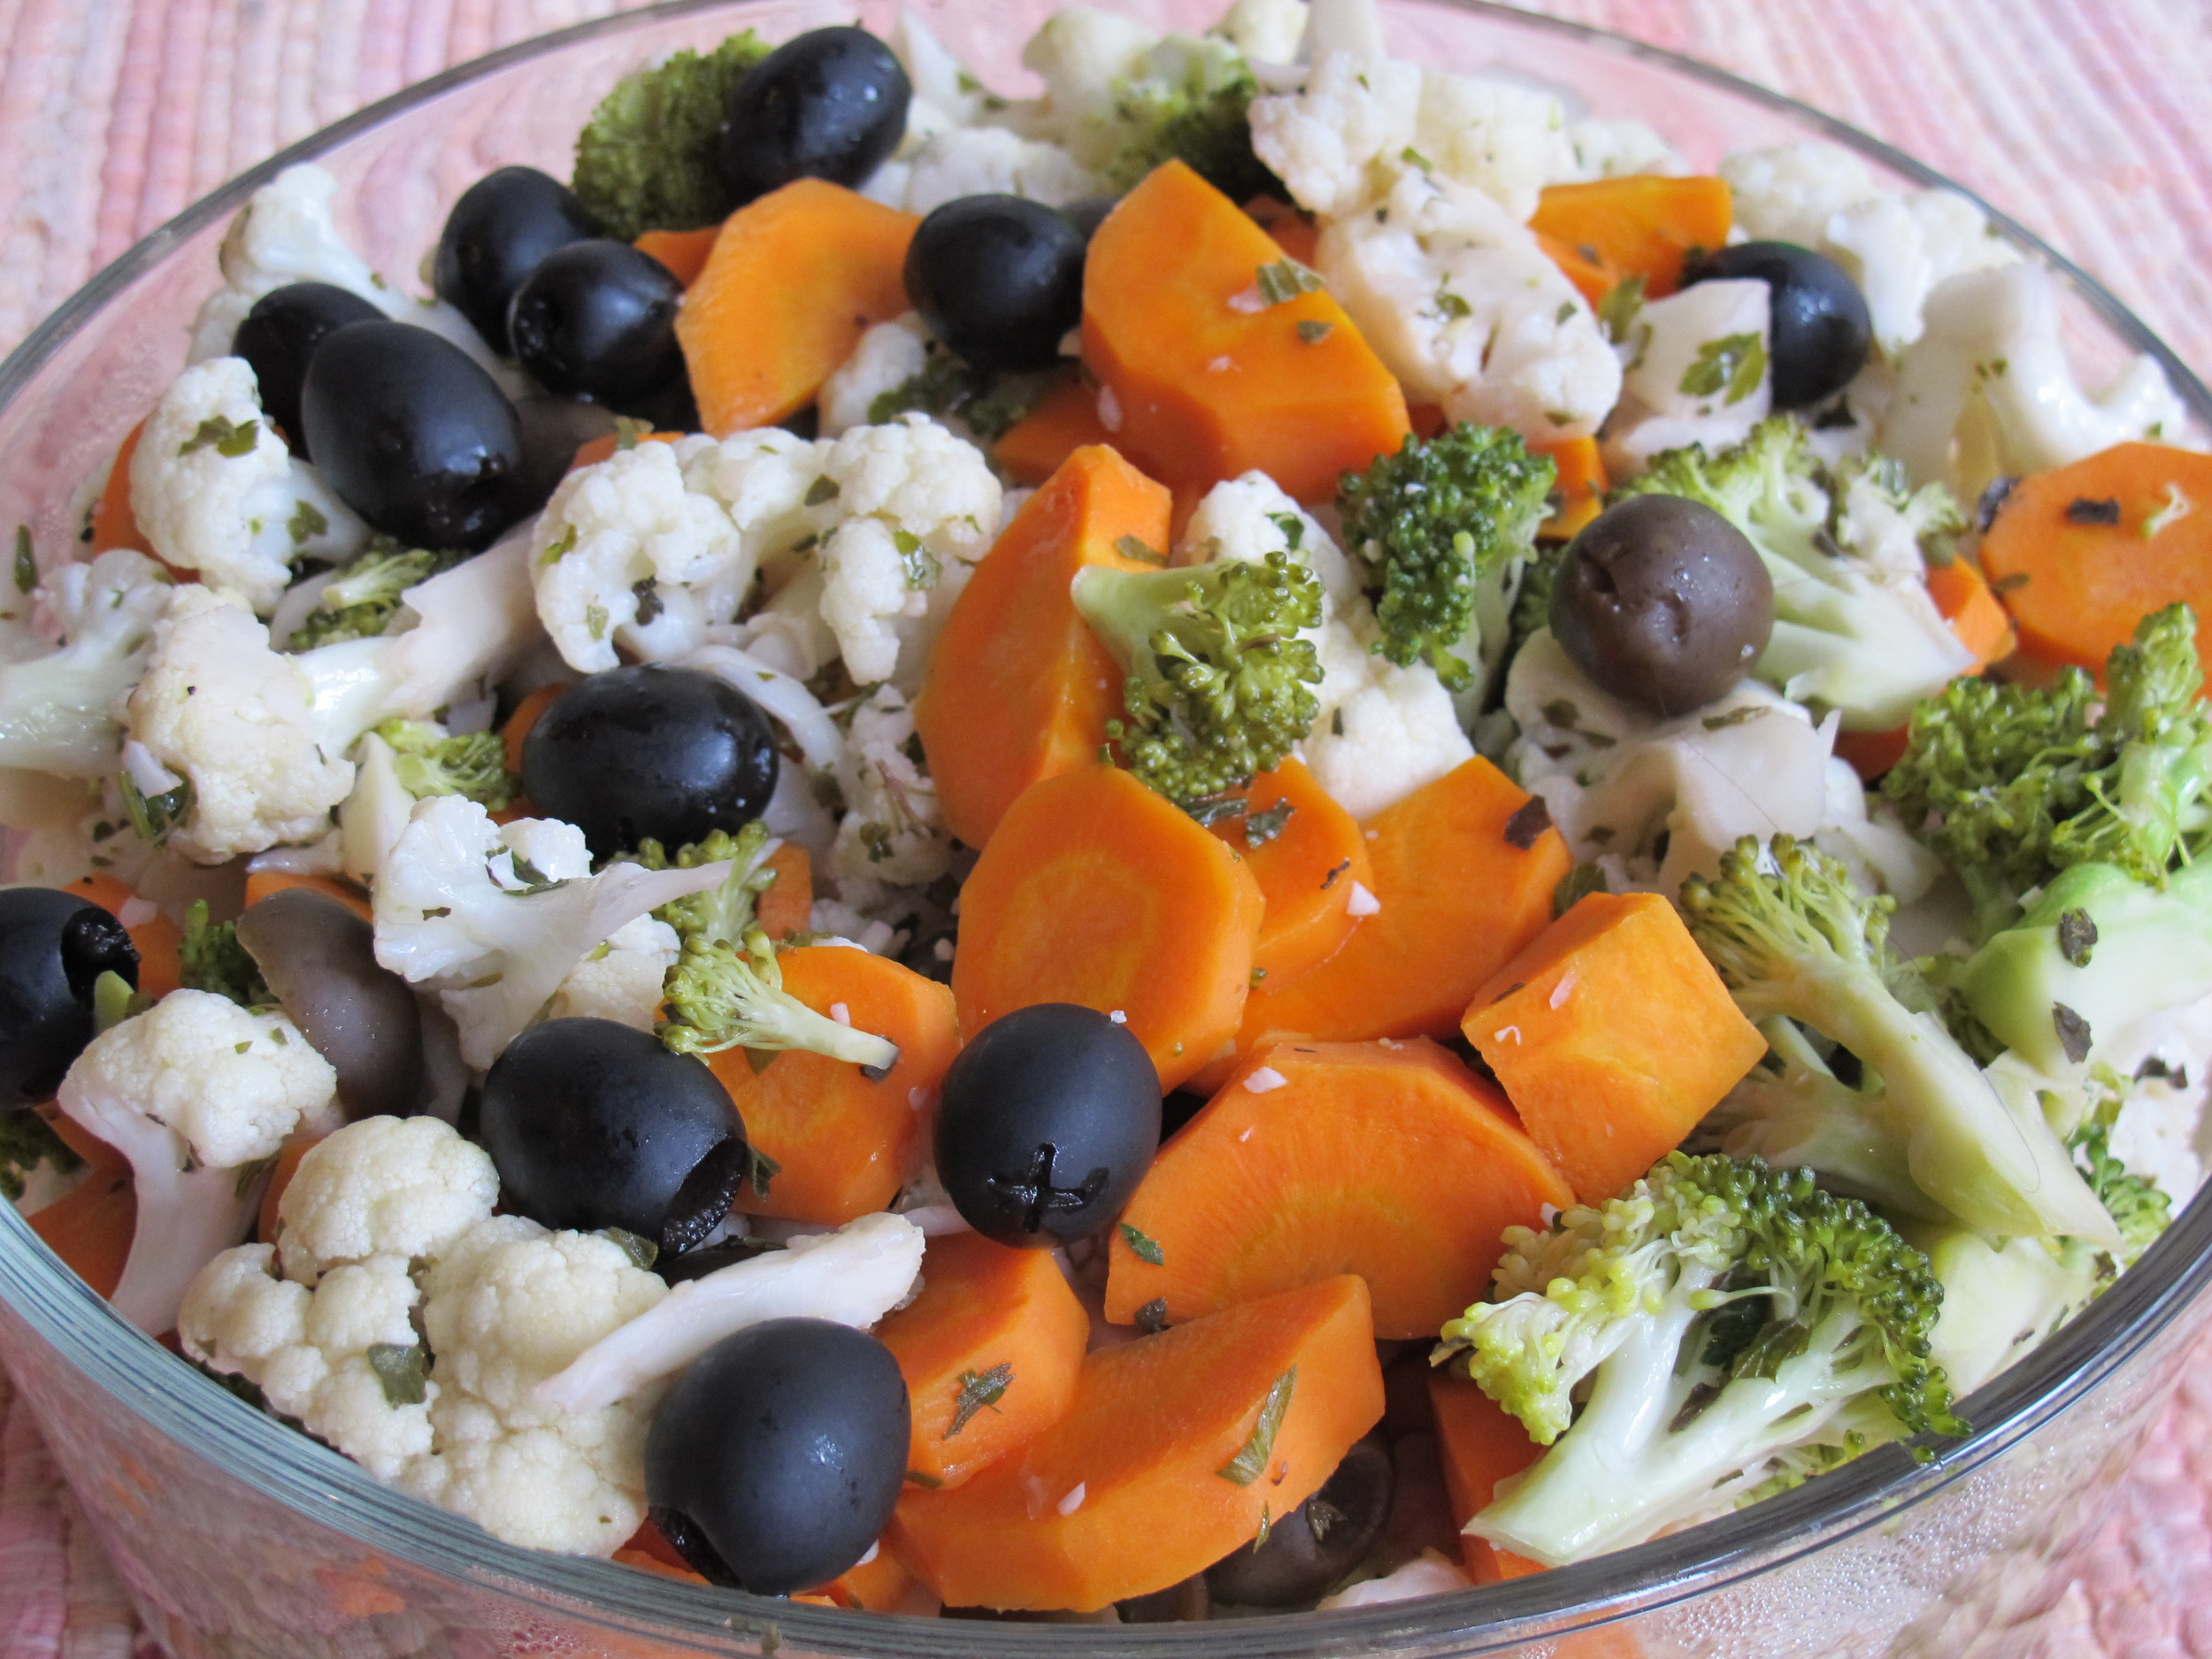 Cold marinated vegetables